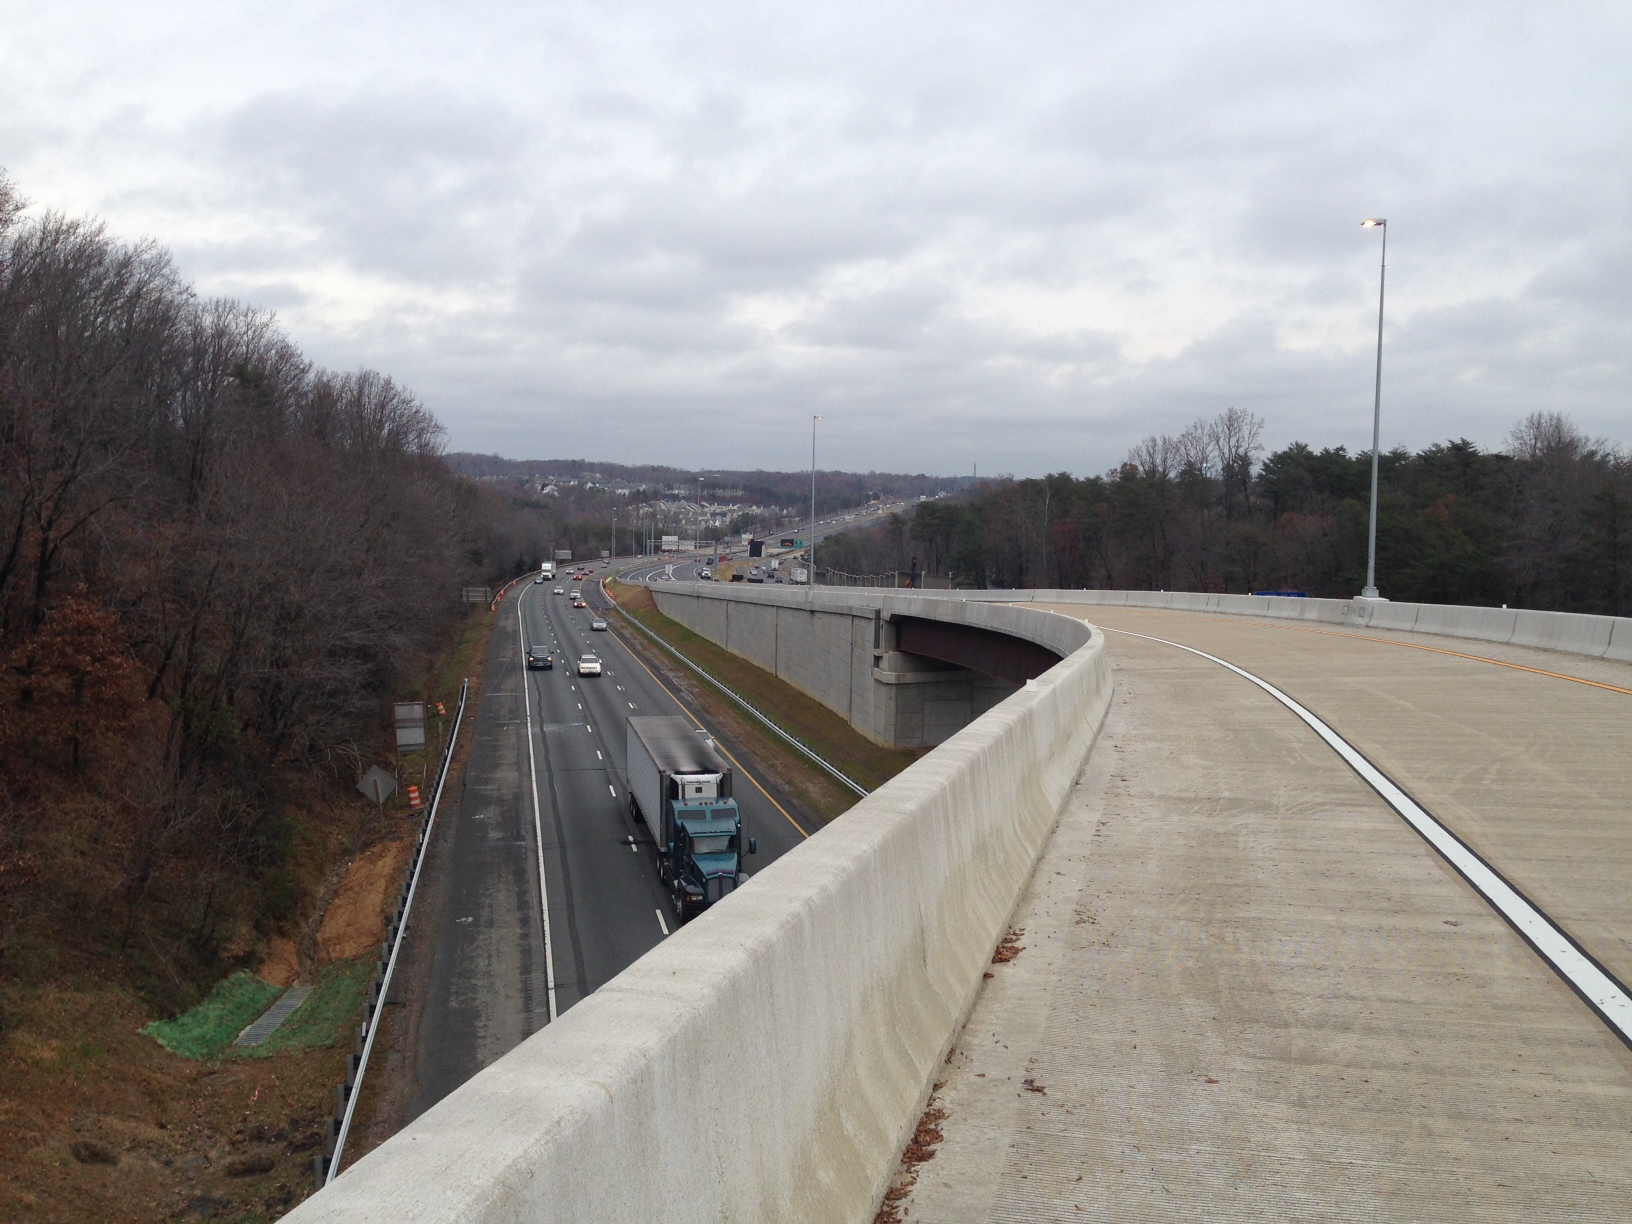 Preview of the 95 Express Lanes (Video)